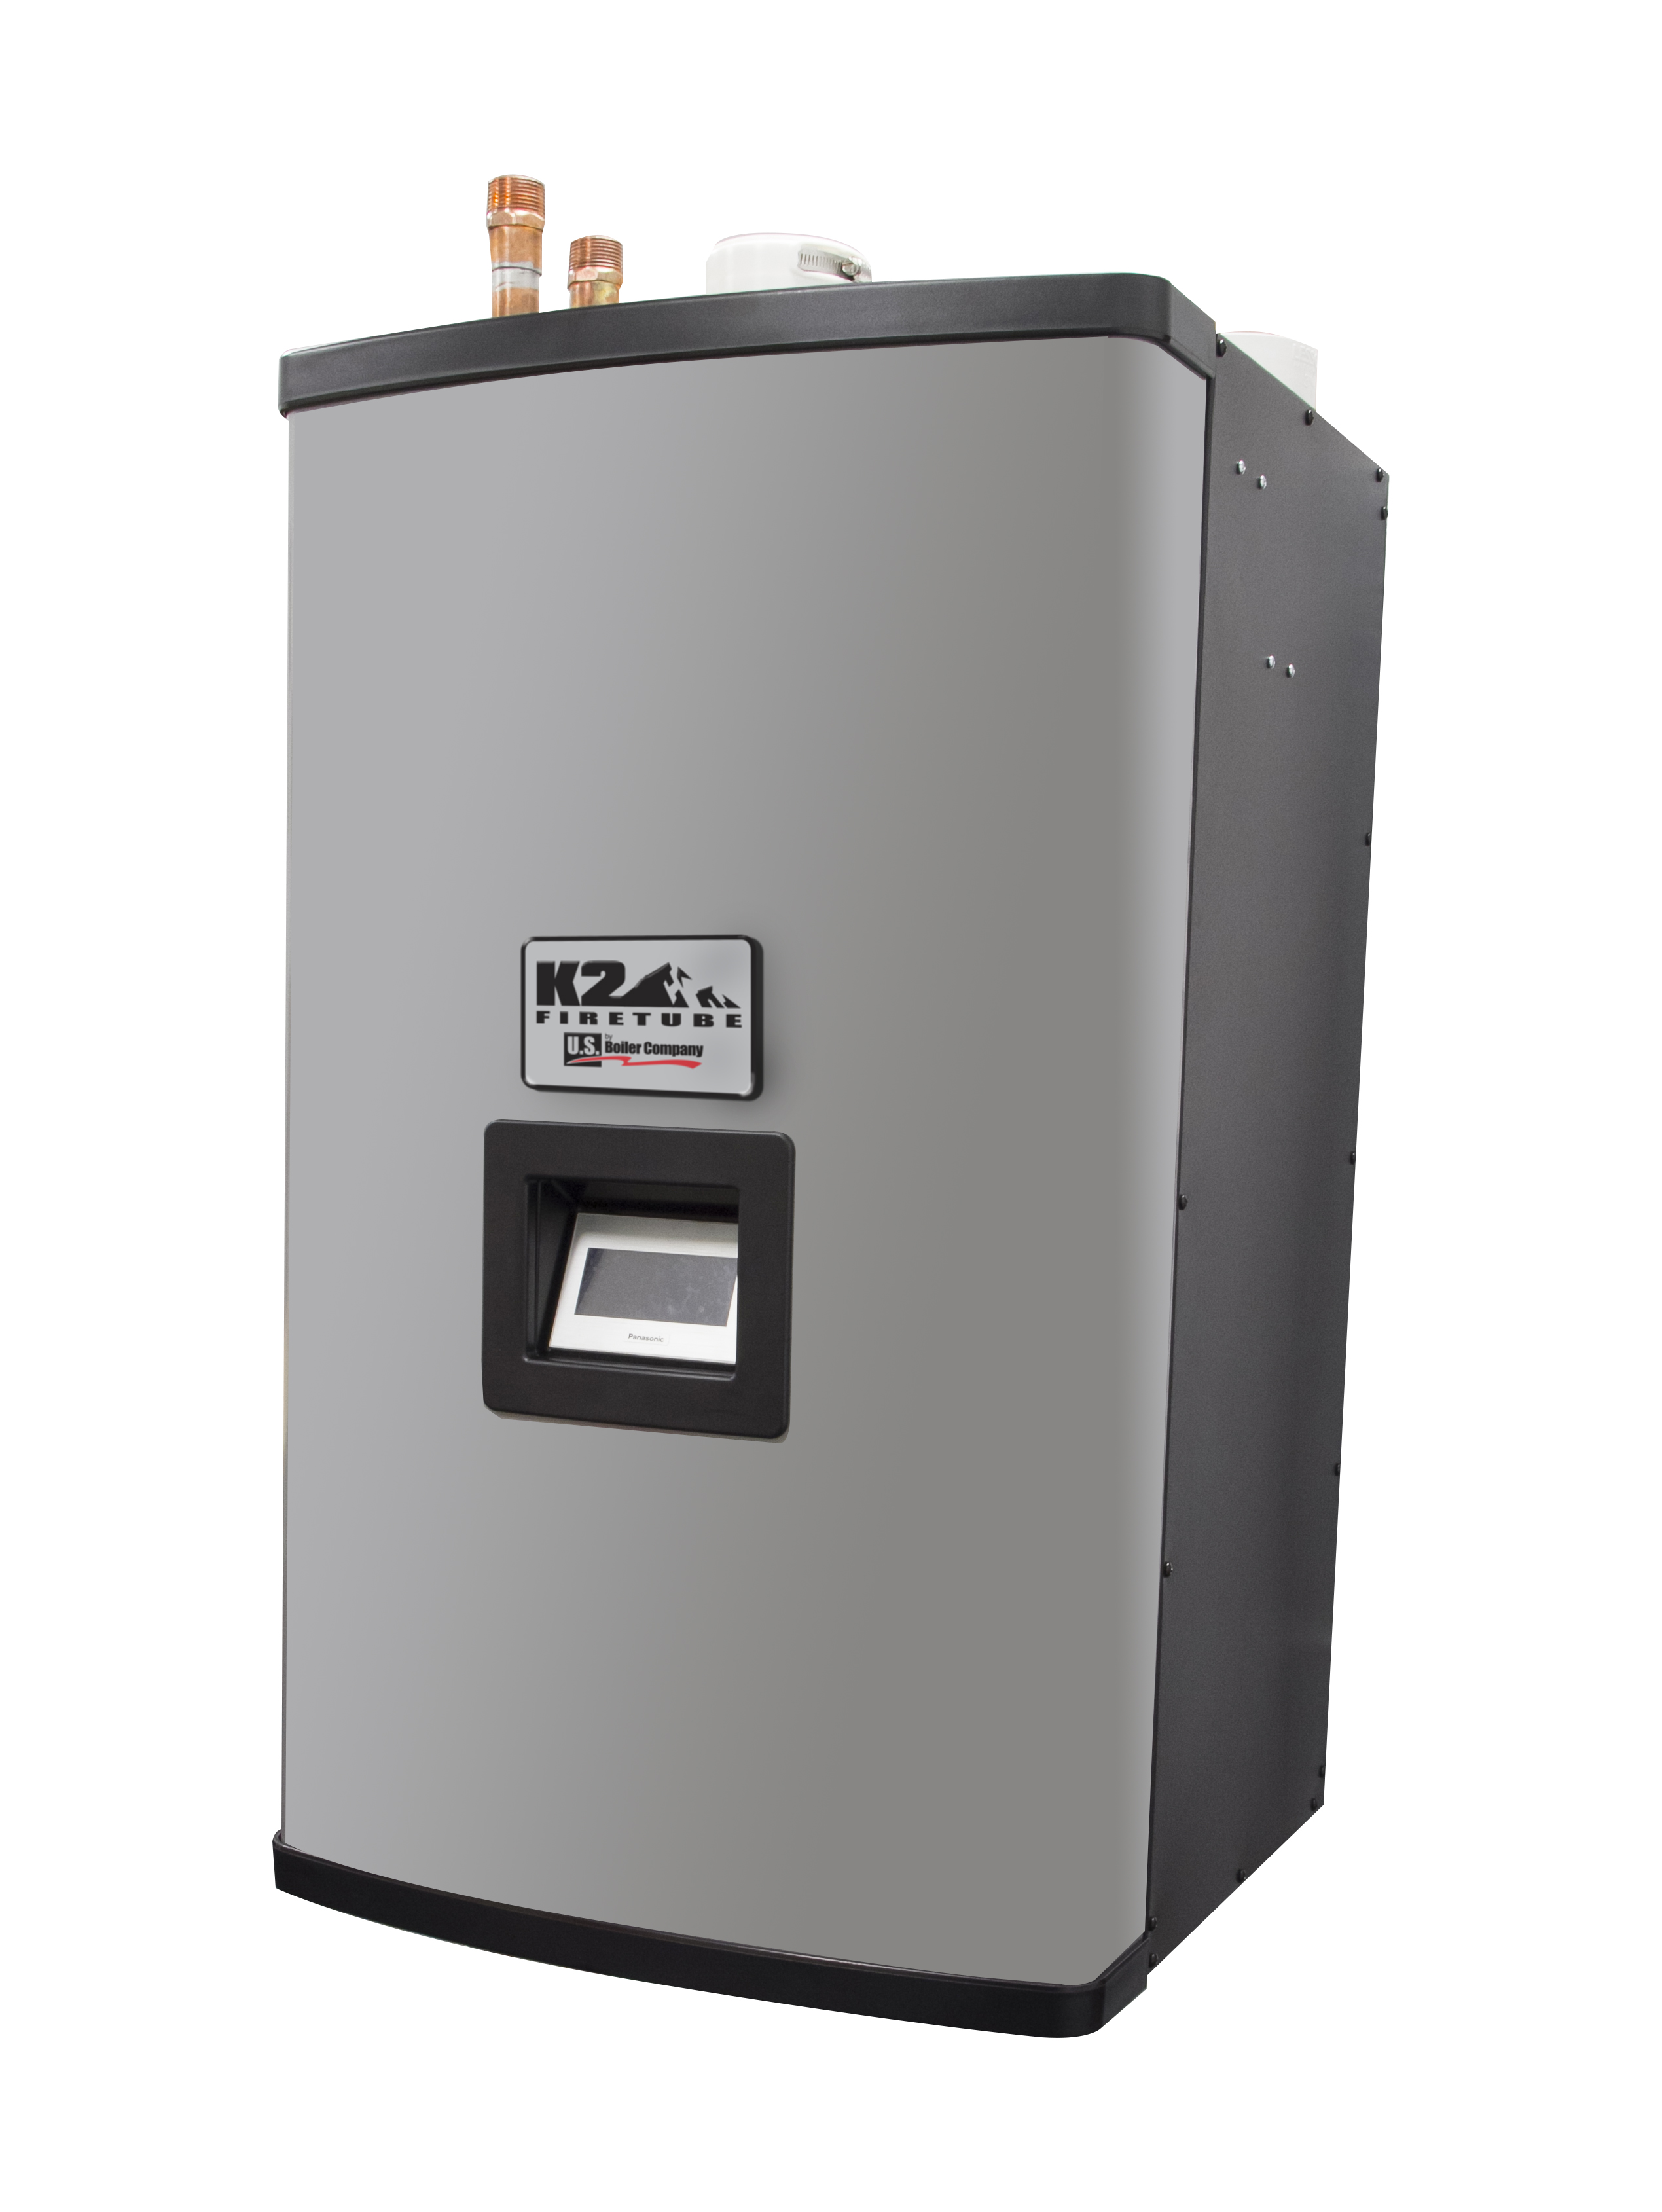 hight resolution of the new k2 firetube boiler is the newest addition to u s boiler co s k2 high efficiency series joining the k2 watertube boiler the 95 percent afue k2